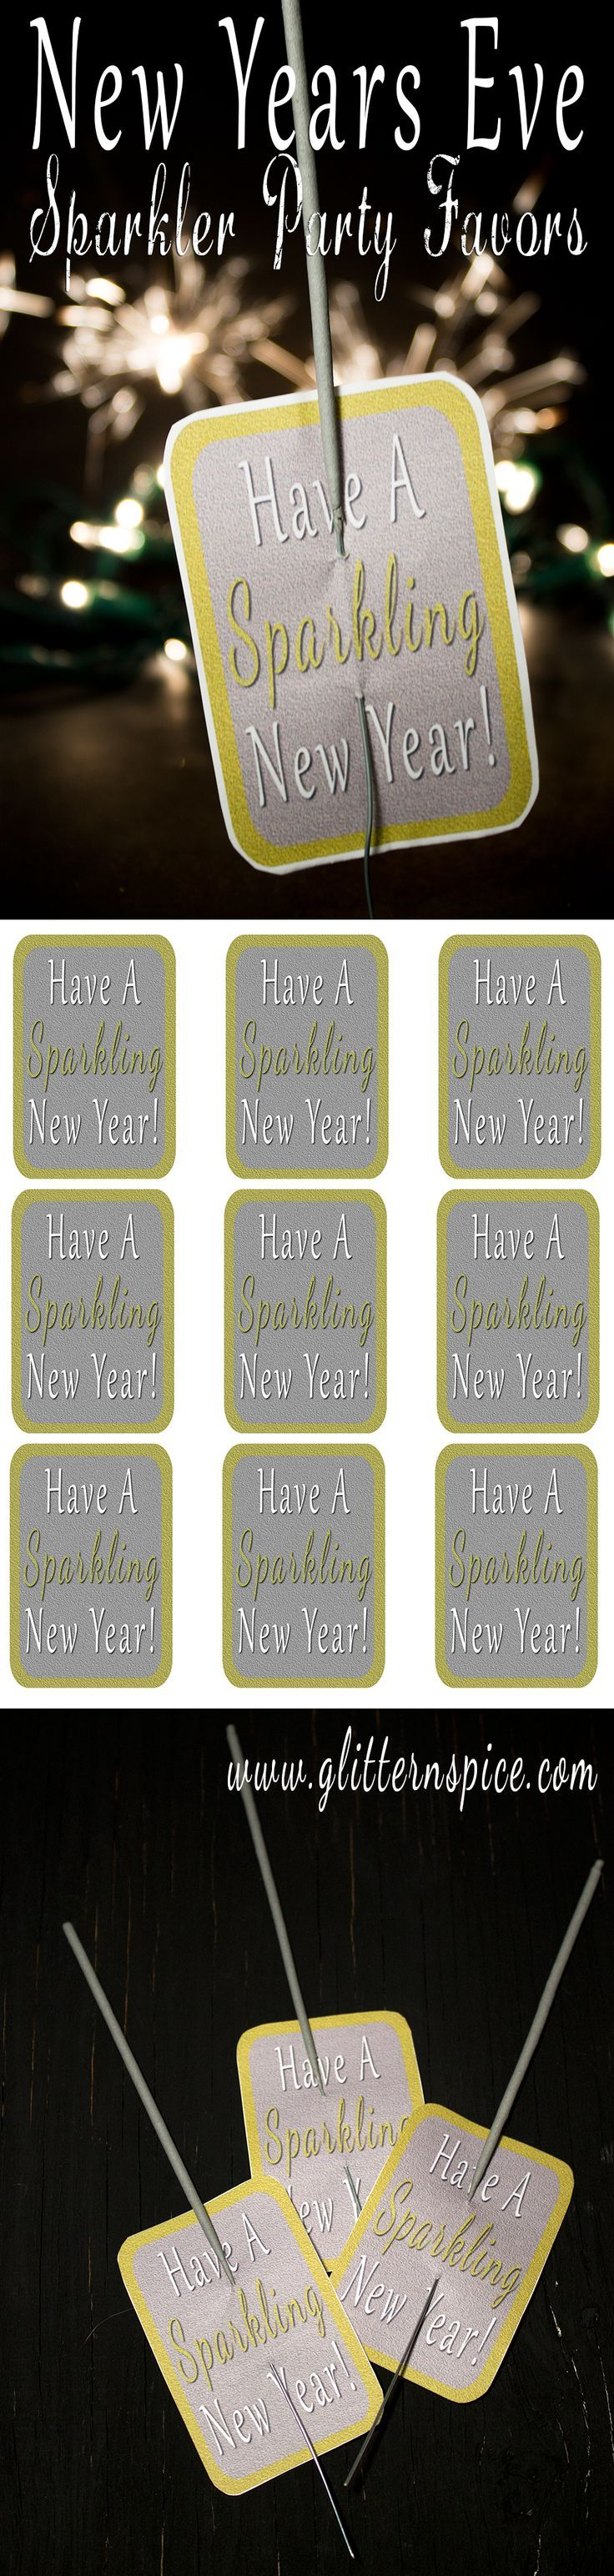 Nice New Years Eve Dresses Sparkling New Years Eve Party Favors - Includes Free Printable #NewYearsEve #New... Check more at http://24myshop.cf/fashion-style/new-years-eve-dresses-sparkling-new-years-eve-party-favors-includes-free-printable-newyearseve-new-2/